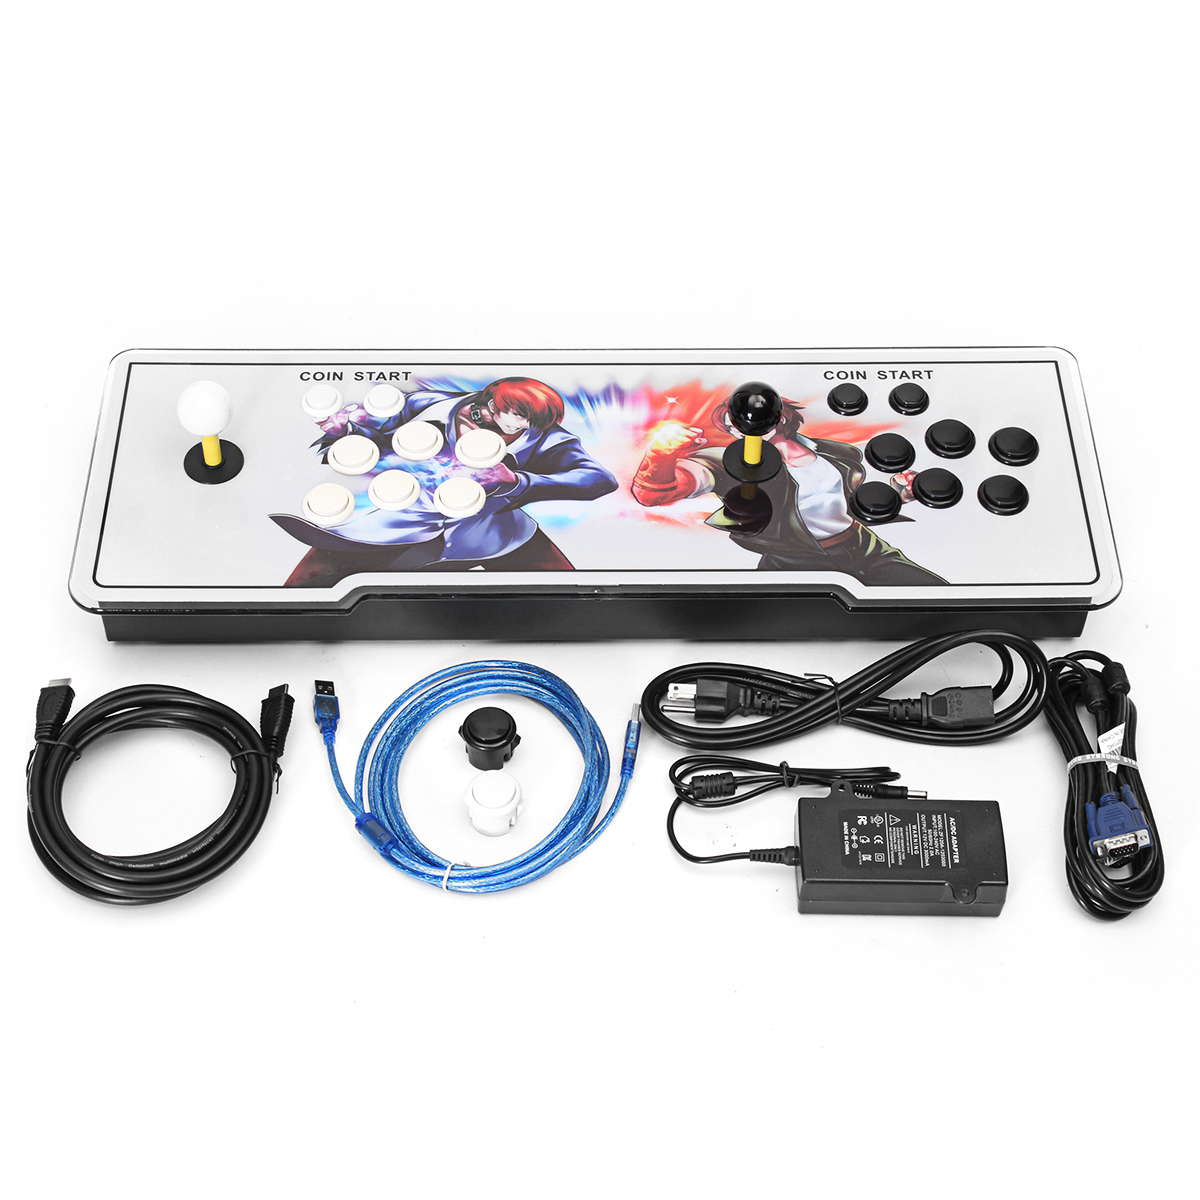 1299 In 1 Games Arcade Game Console Machine Video With Joystick Key VGA/HDMI/USB